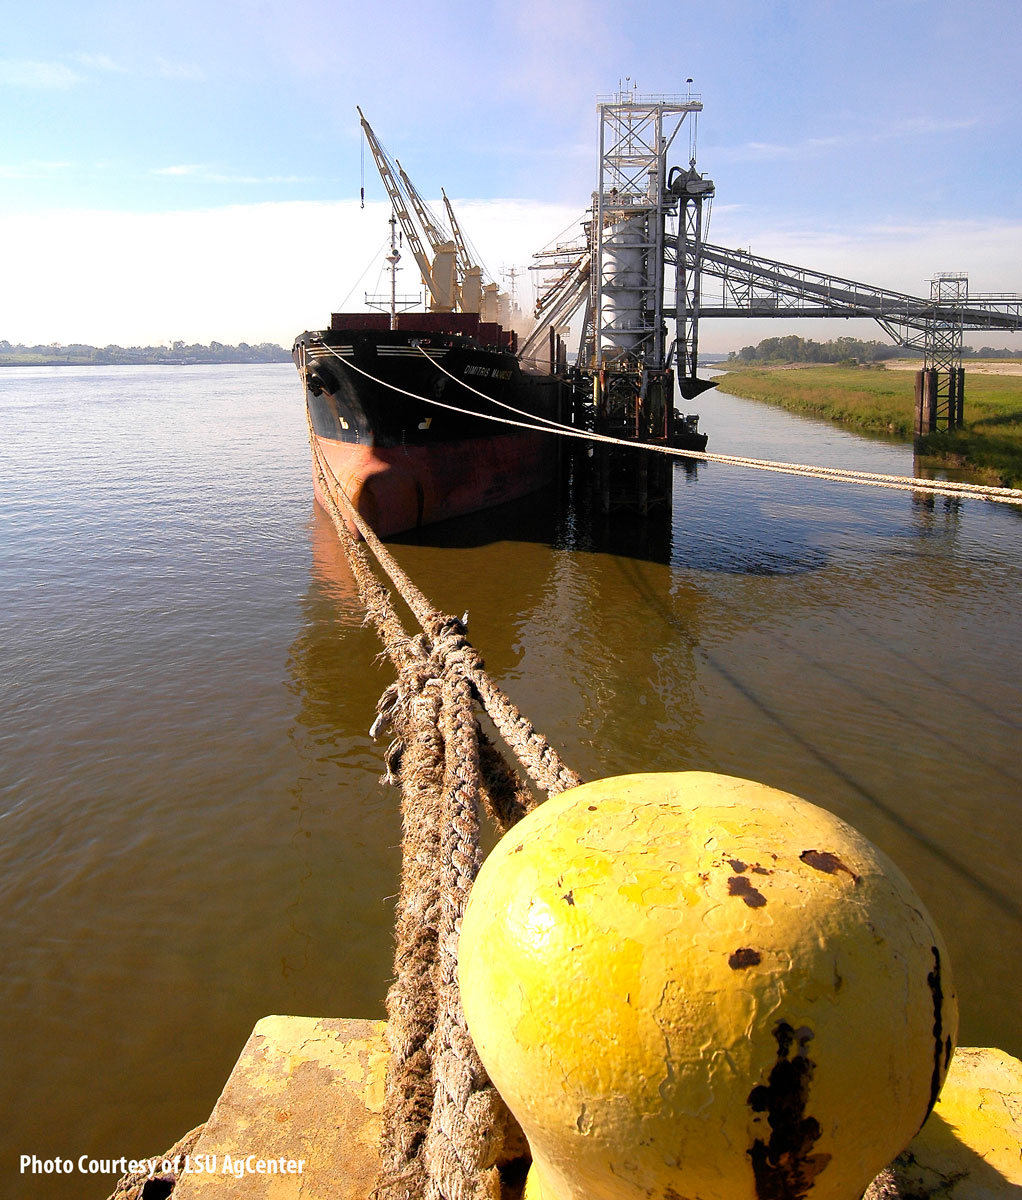 Rice being loaded onto ship, large yellow concrete piling with ropes tied to it